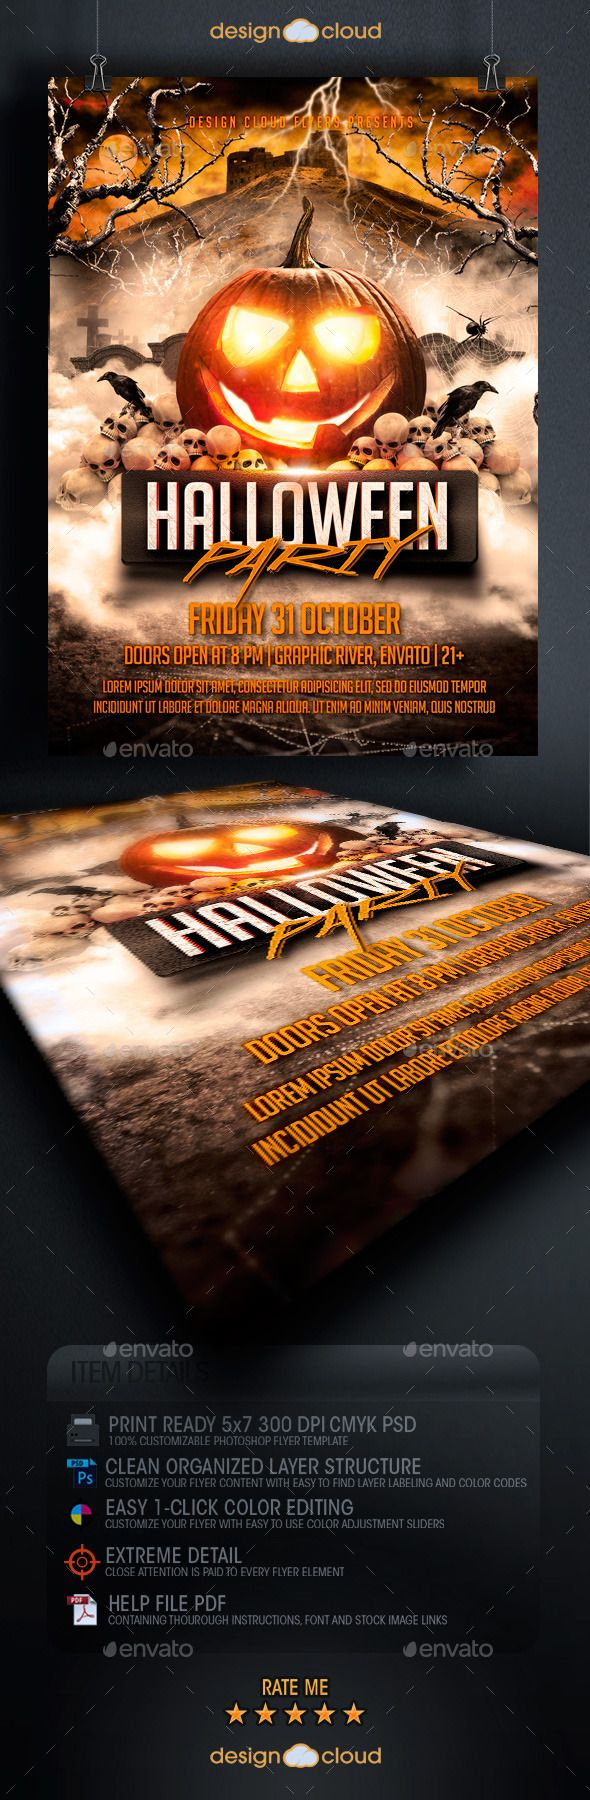 Halloween Party Flyer Template | More Halloween party flyer, Party ...